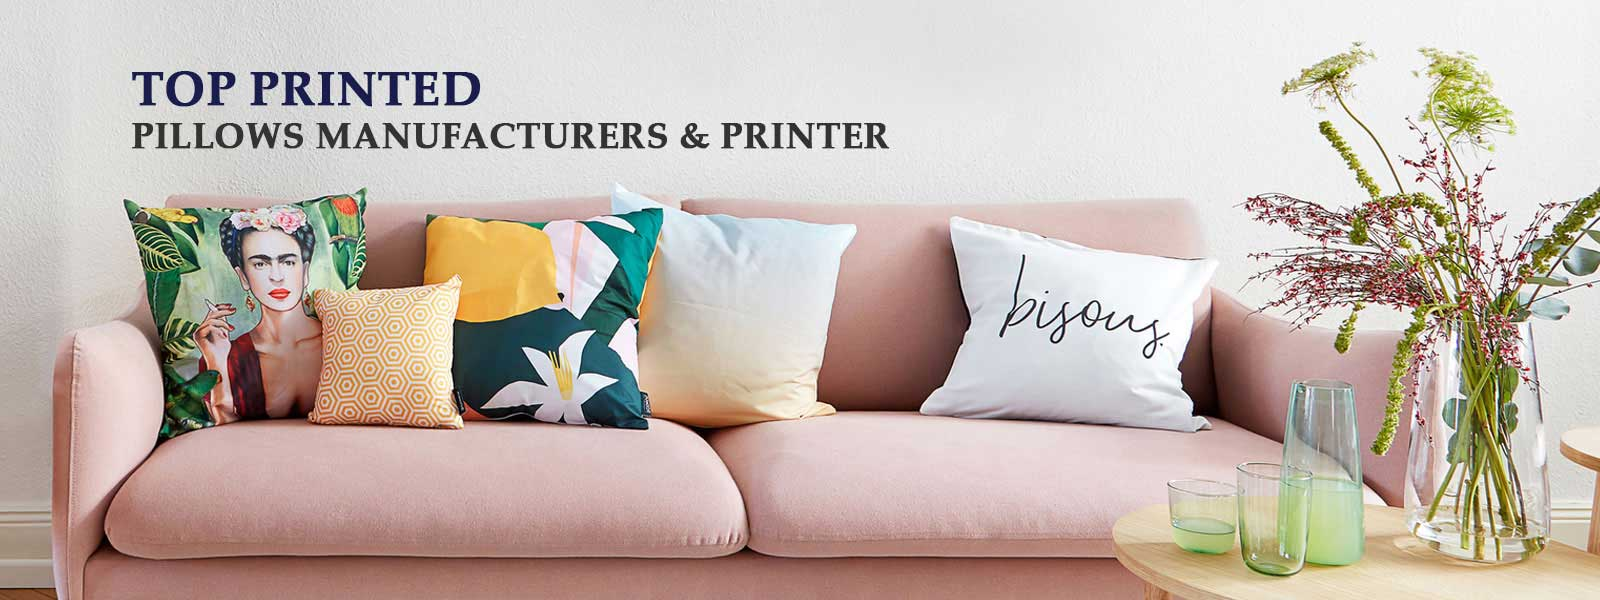 Top printed pillows Manufacturers and Printer